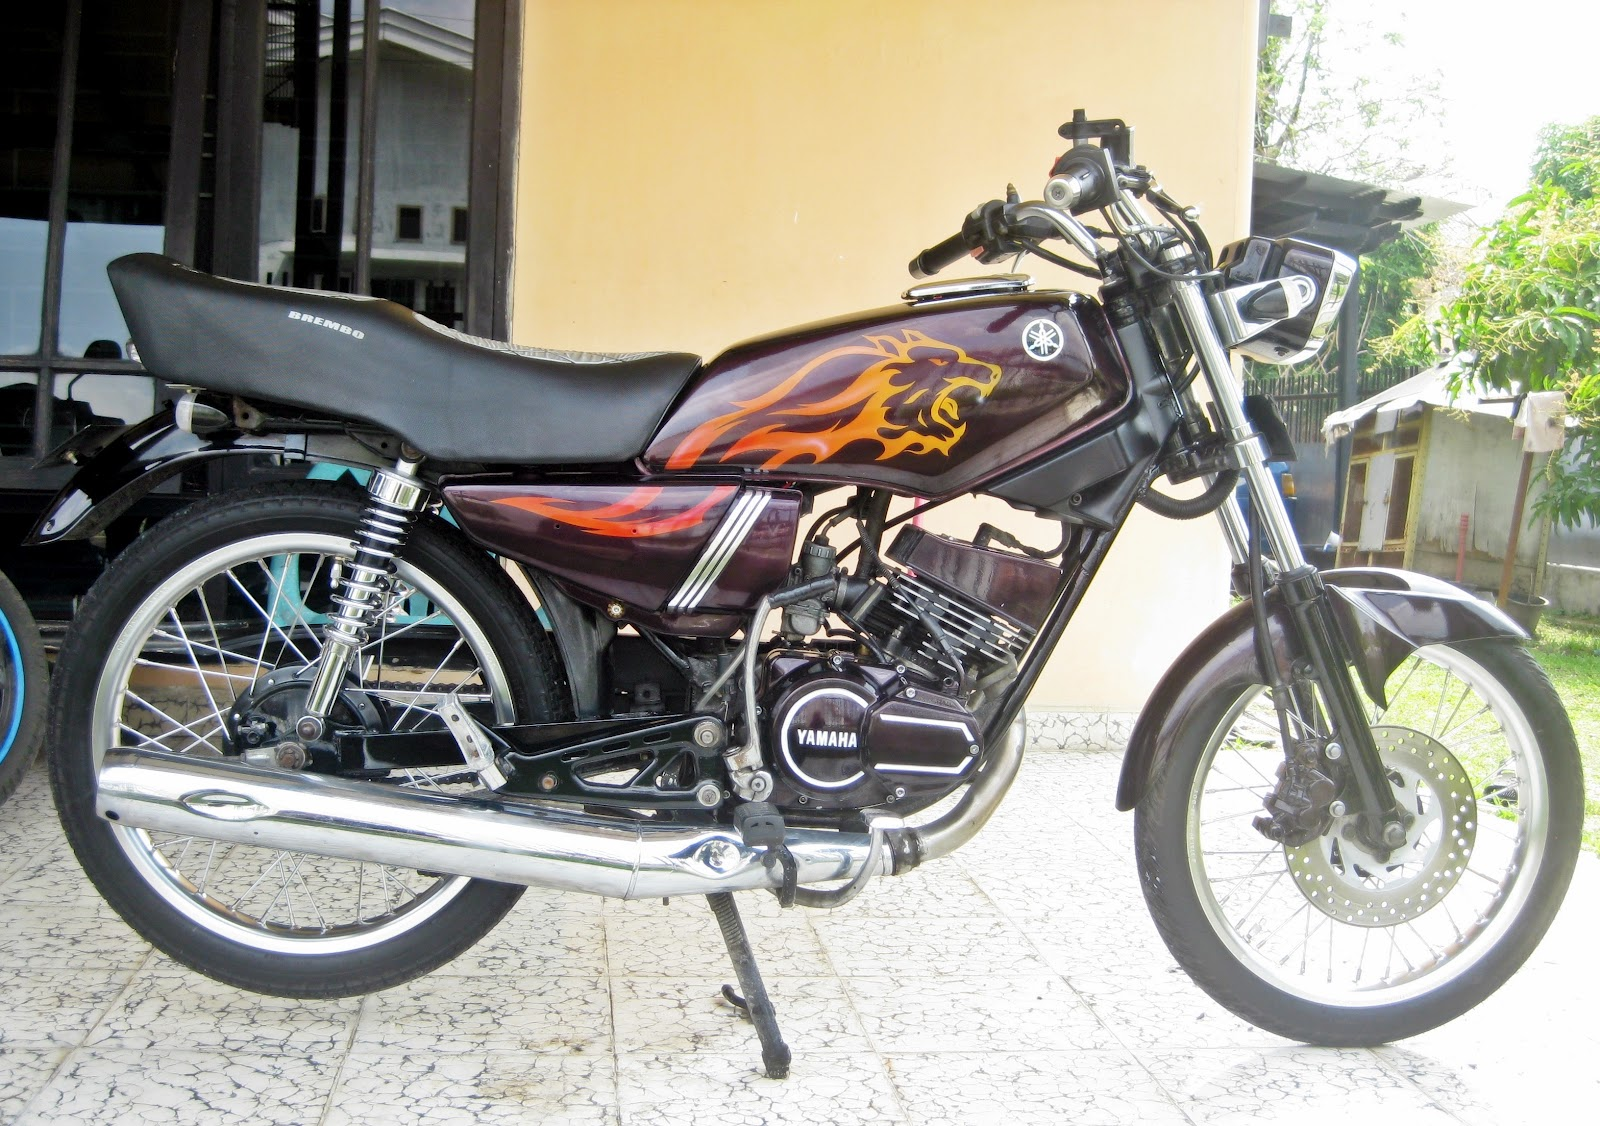 Top Modifikasi Motor King Warna Hitam Terbaru Modifikasi Motor